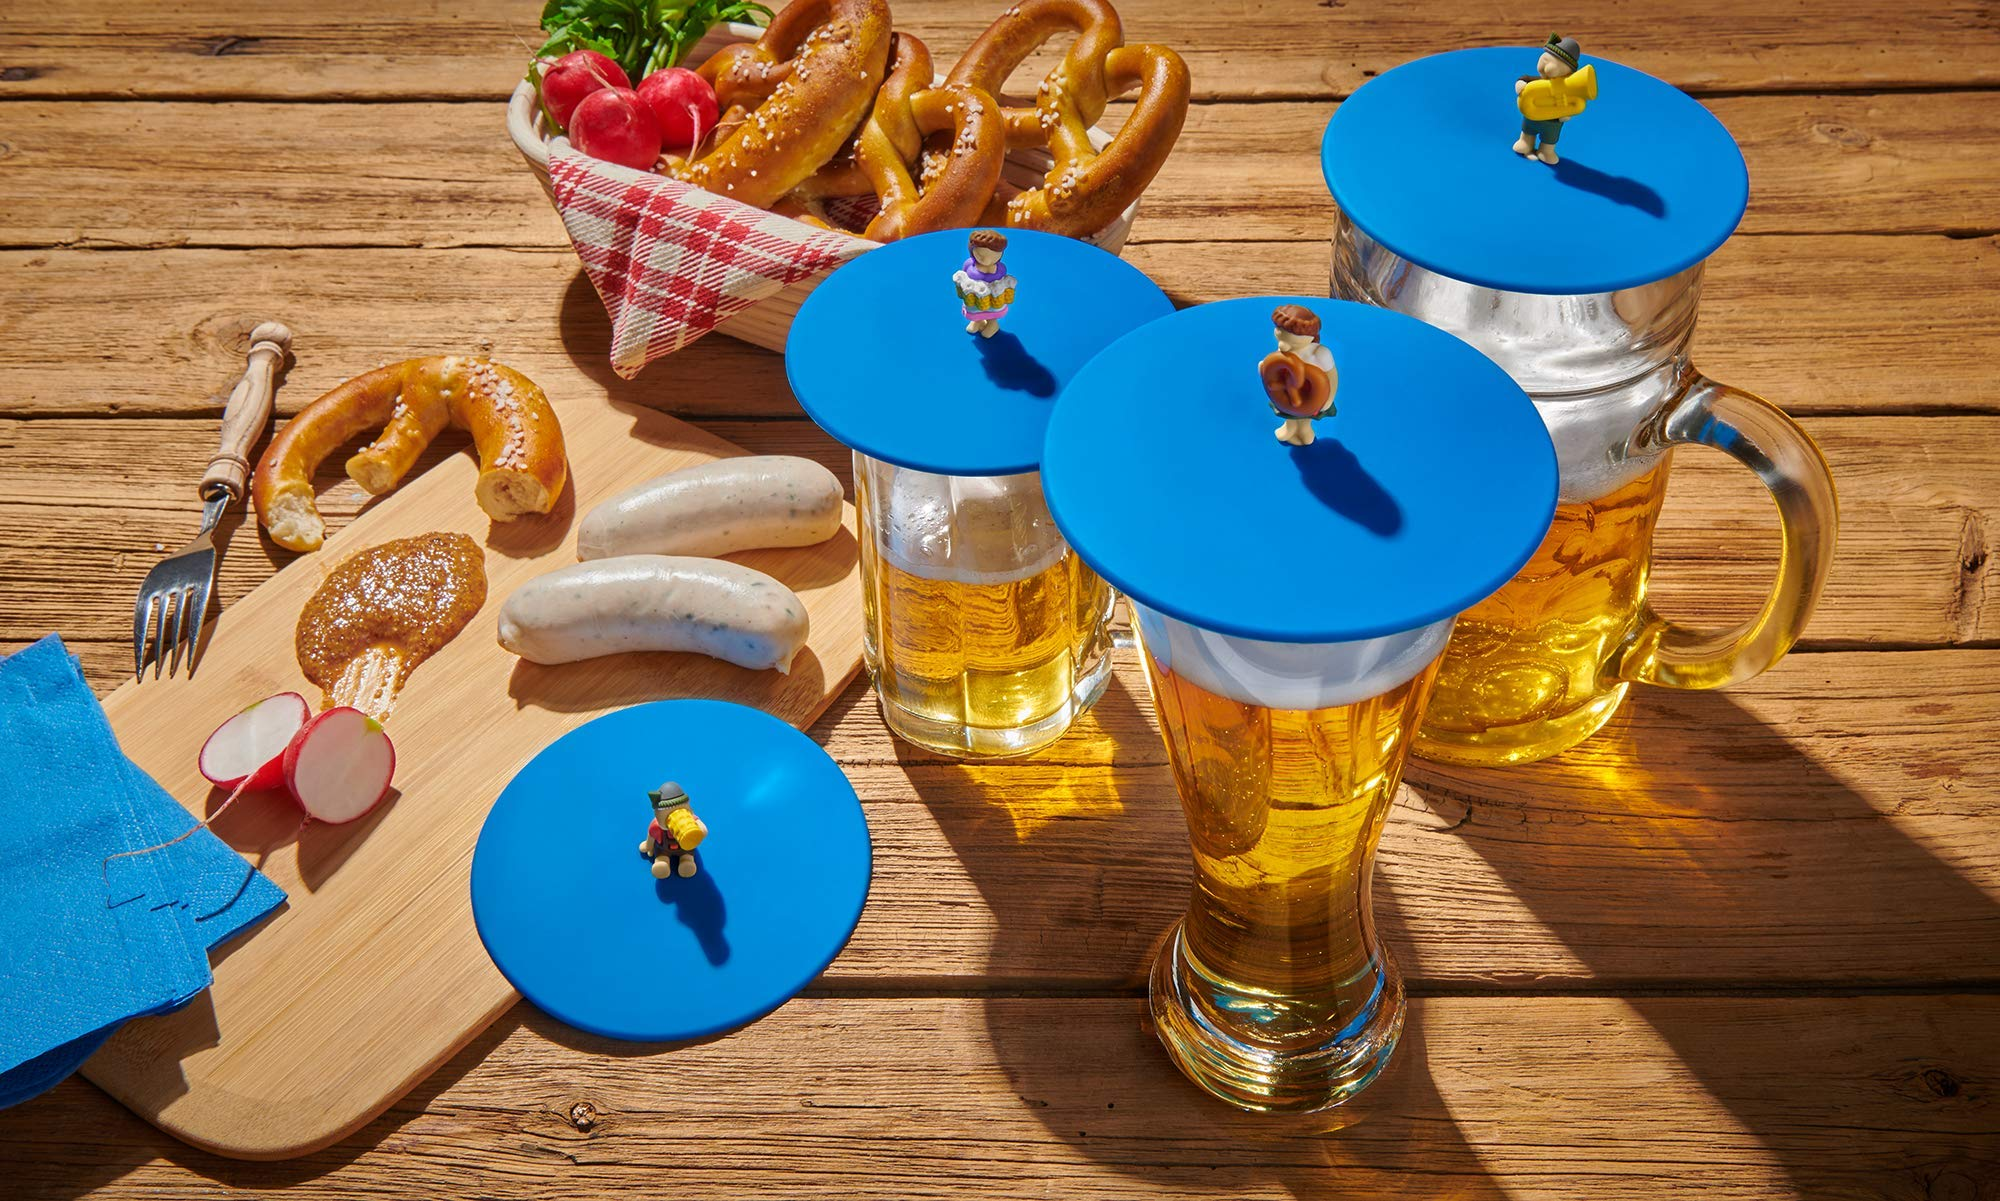 Lurch My Lid Beer Garden 210300 Glass Covers with Funny Figures Set of 4